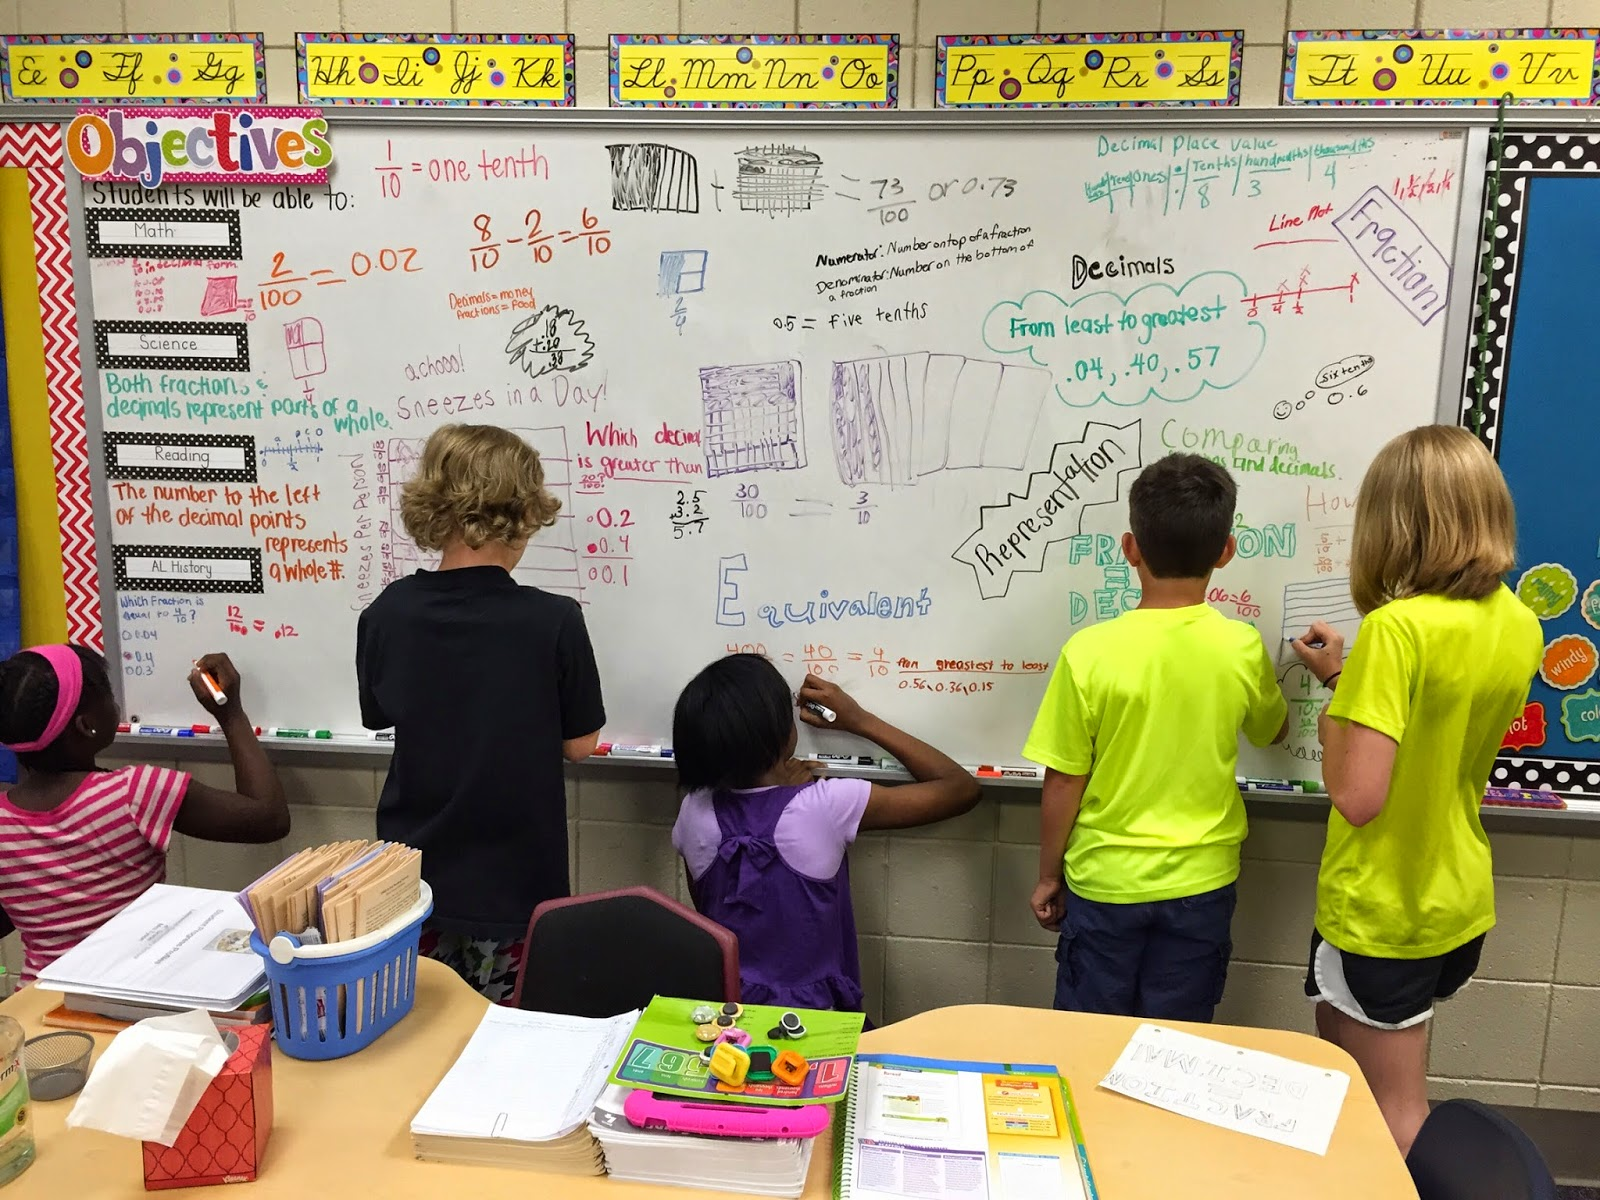 Graffiti wall reading - Ms Tyson S Fourth Grade Class At Lakewood Elementary Reviewed For Their Test On Decimals And Fractions By Making A Math Graffiti Wall